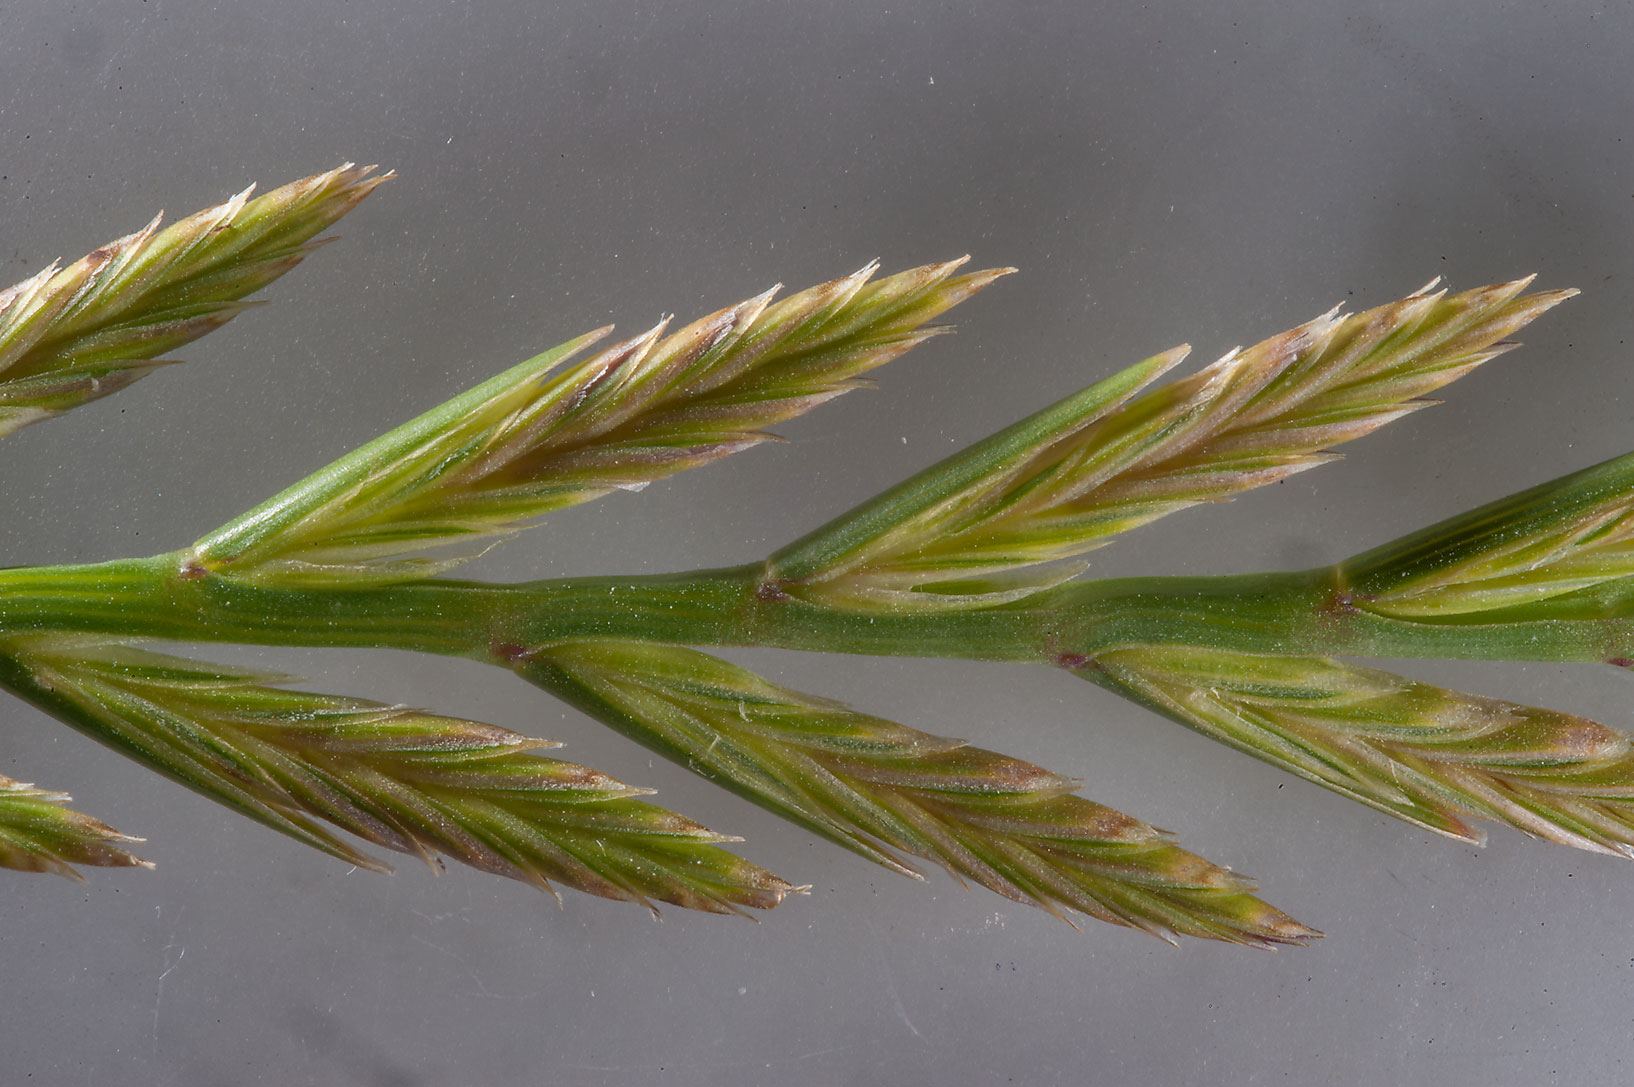 Spikes of rigid ryegrass (Lolium rigidum...in Irkhaya (Irkaya) Farms. Qatar